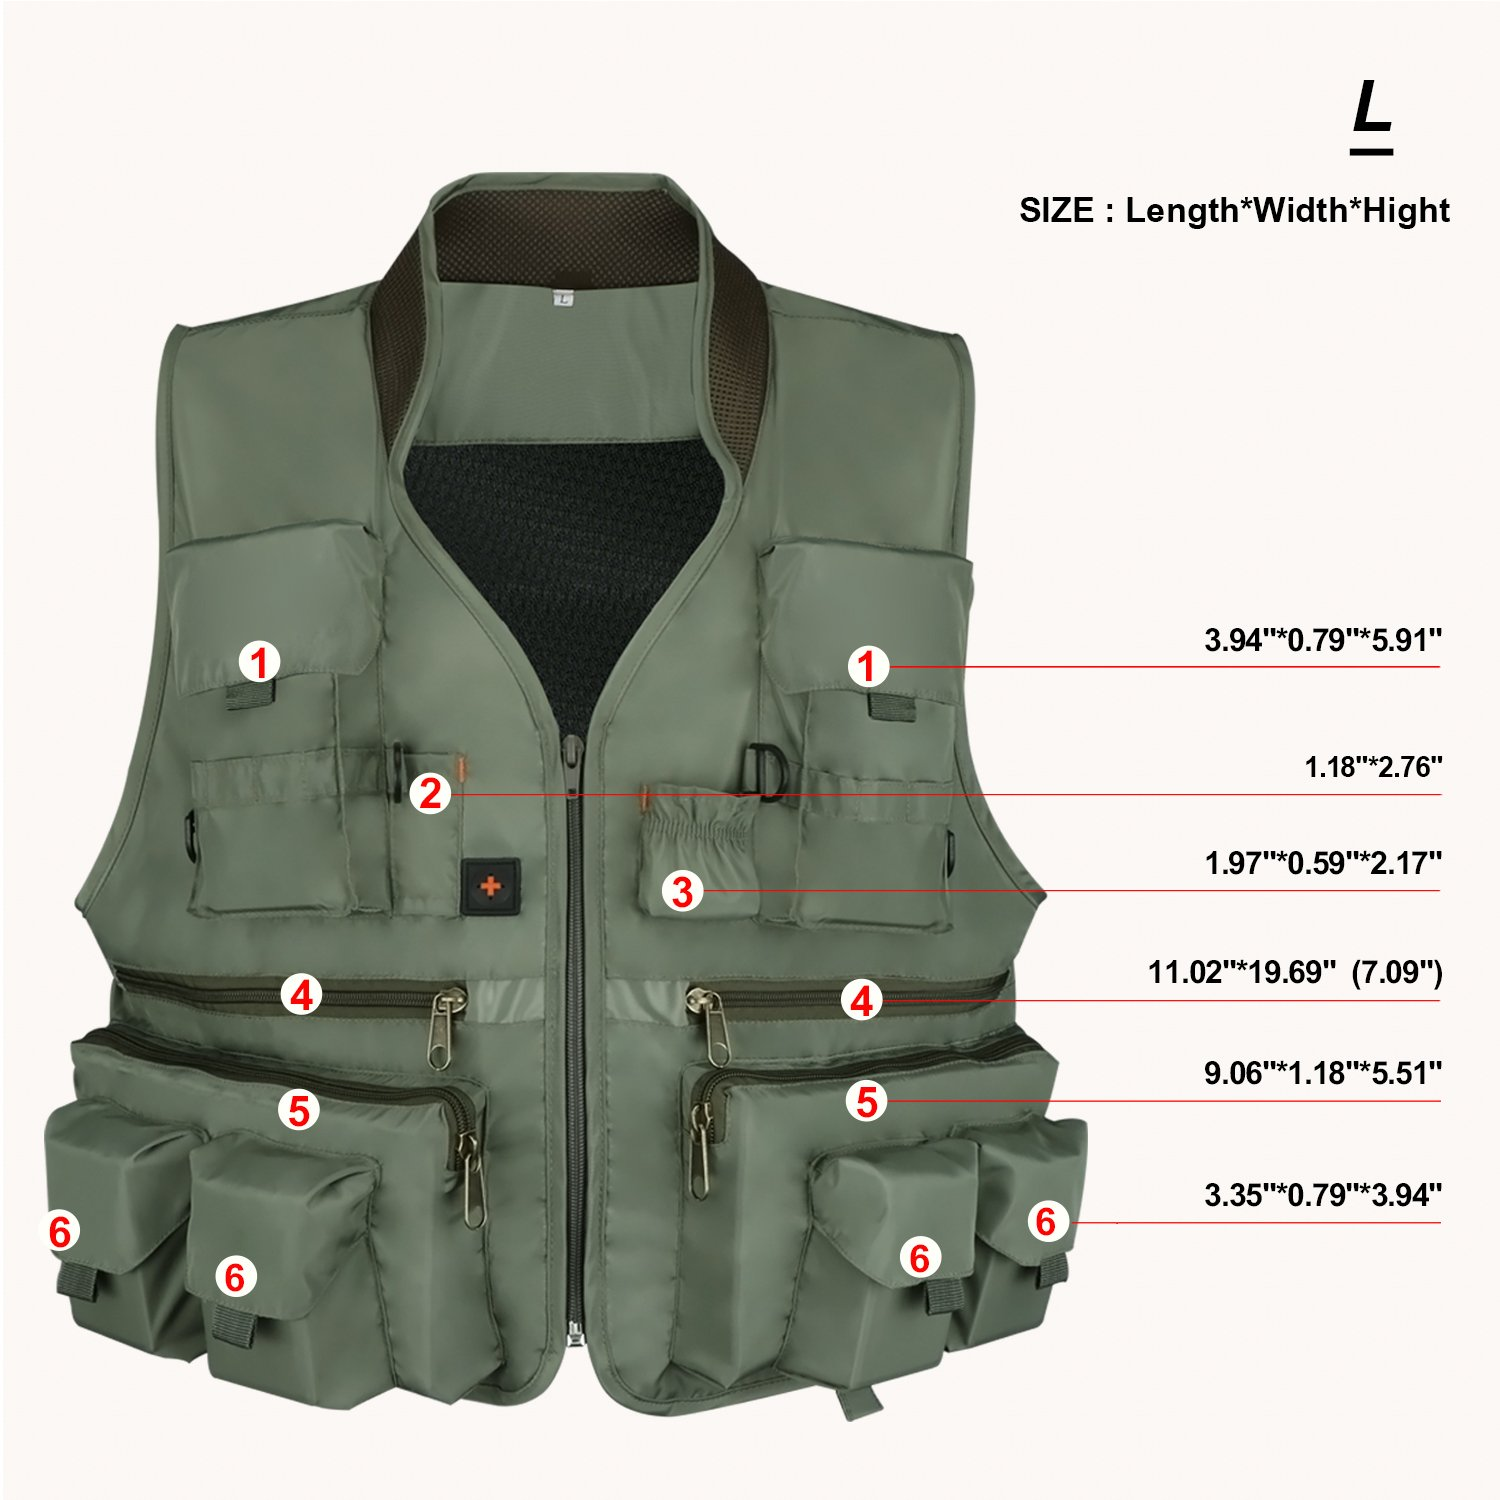 ac6dcaf4d2350 Anglerbasics Army Green Multifunction Airsoft Tactical Vest Quick ...